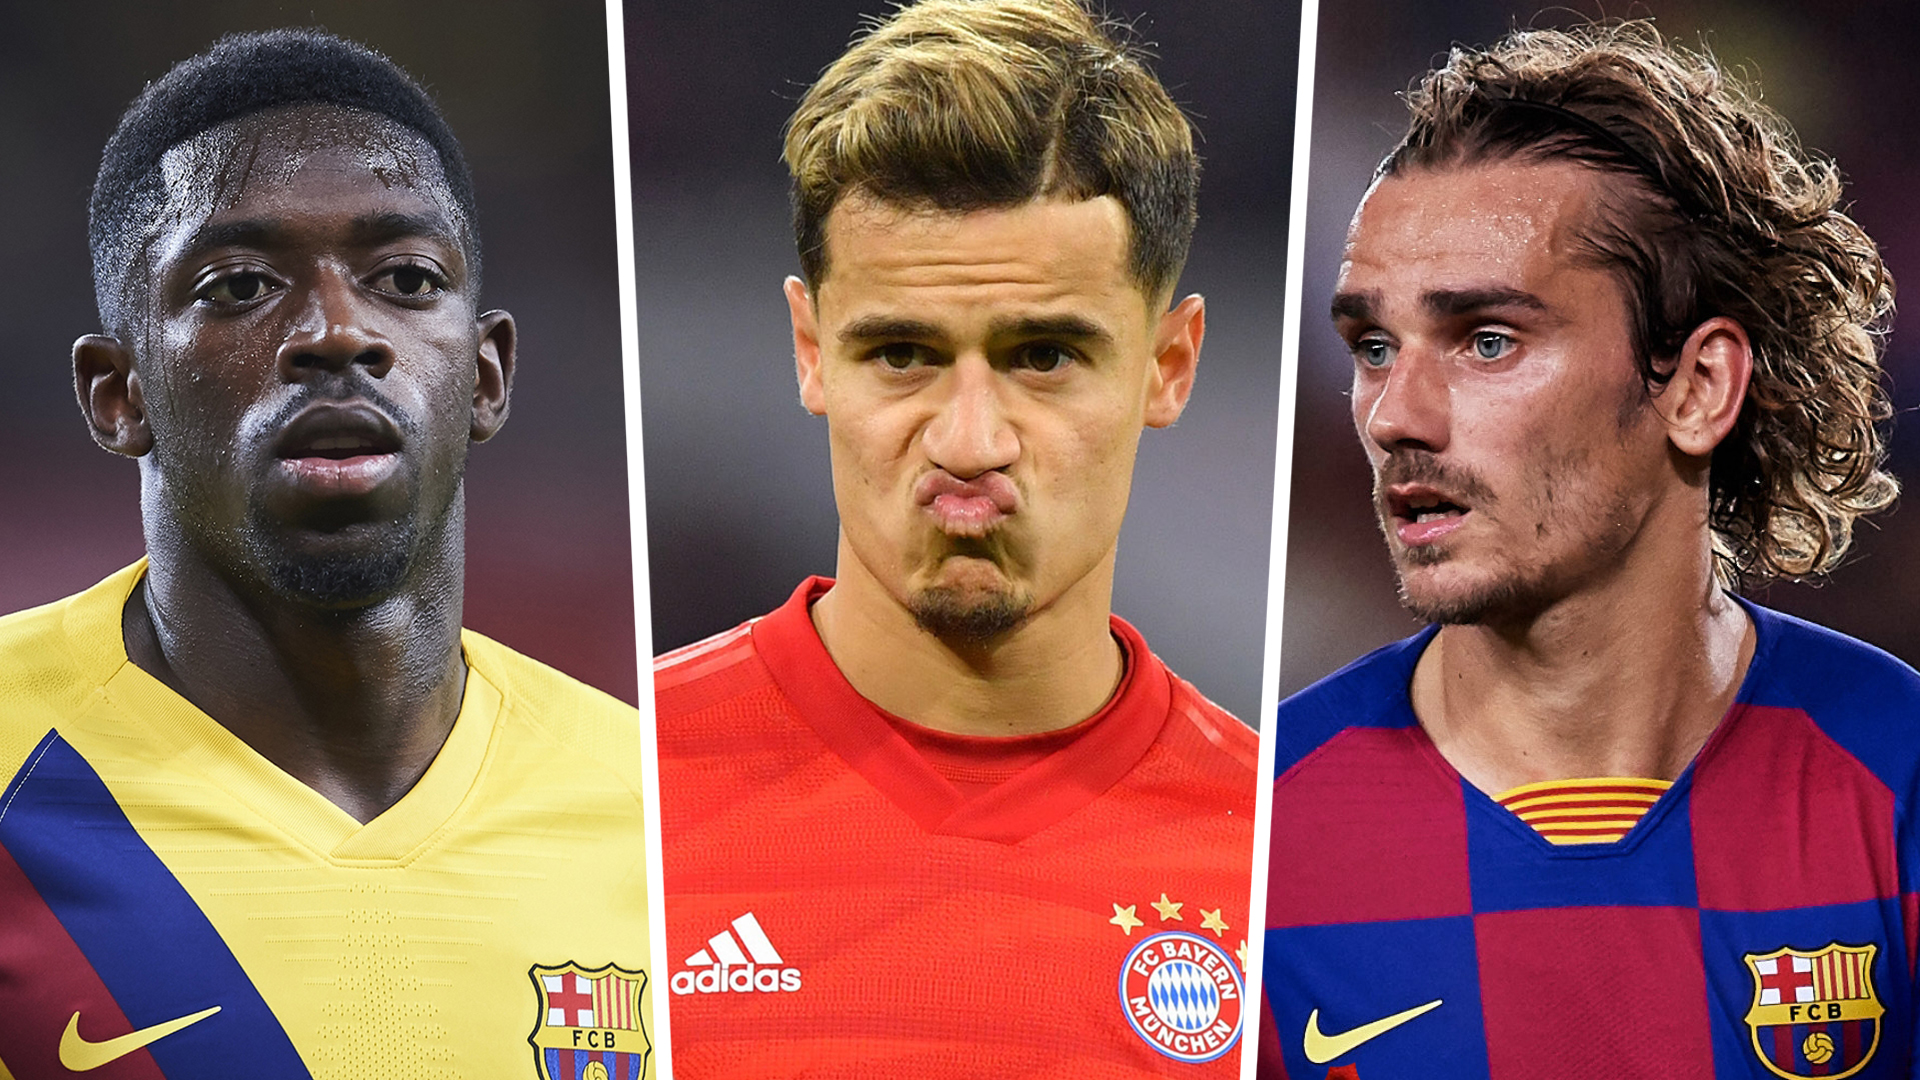 fc barcelona almost all players would receive clearance for transfer from inter striker lautaro martinez archyde fc barcelona almost all players would